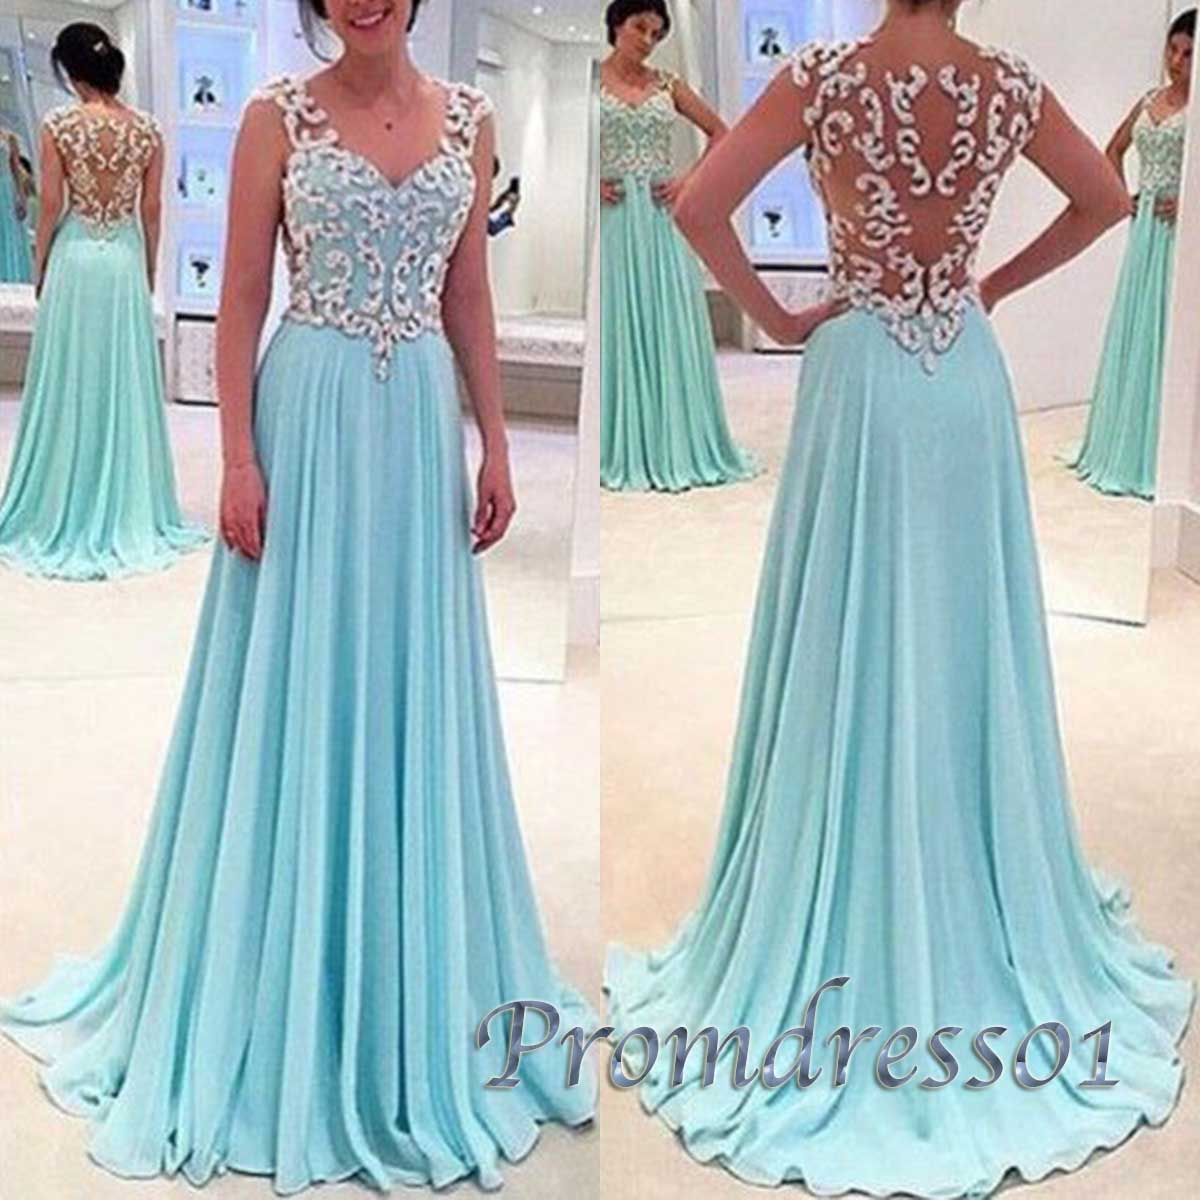 Chiffon prom dress with straps senior prom dresseslight blue see